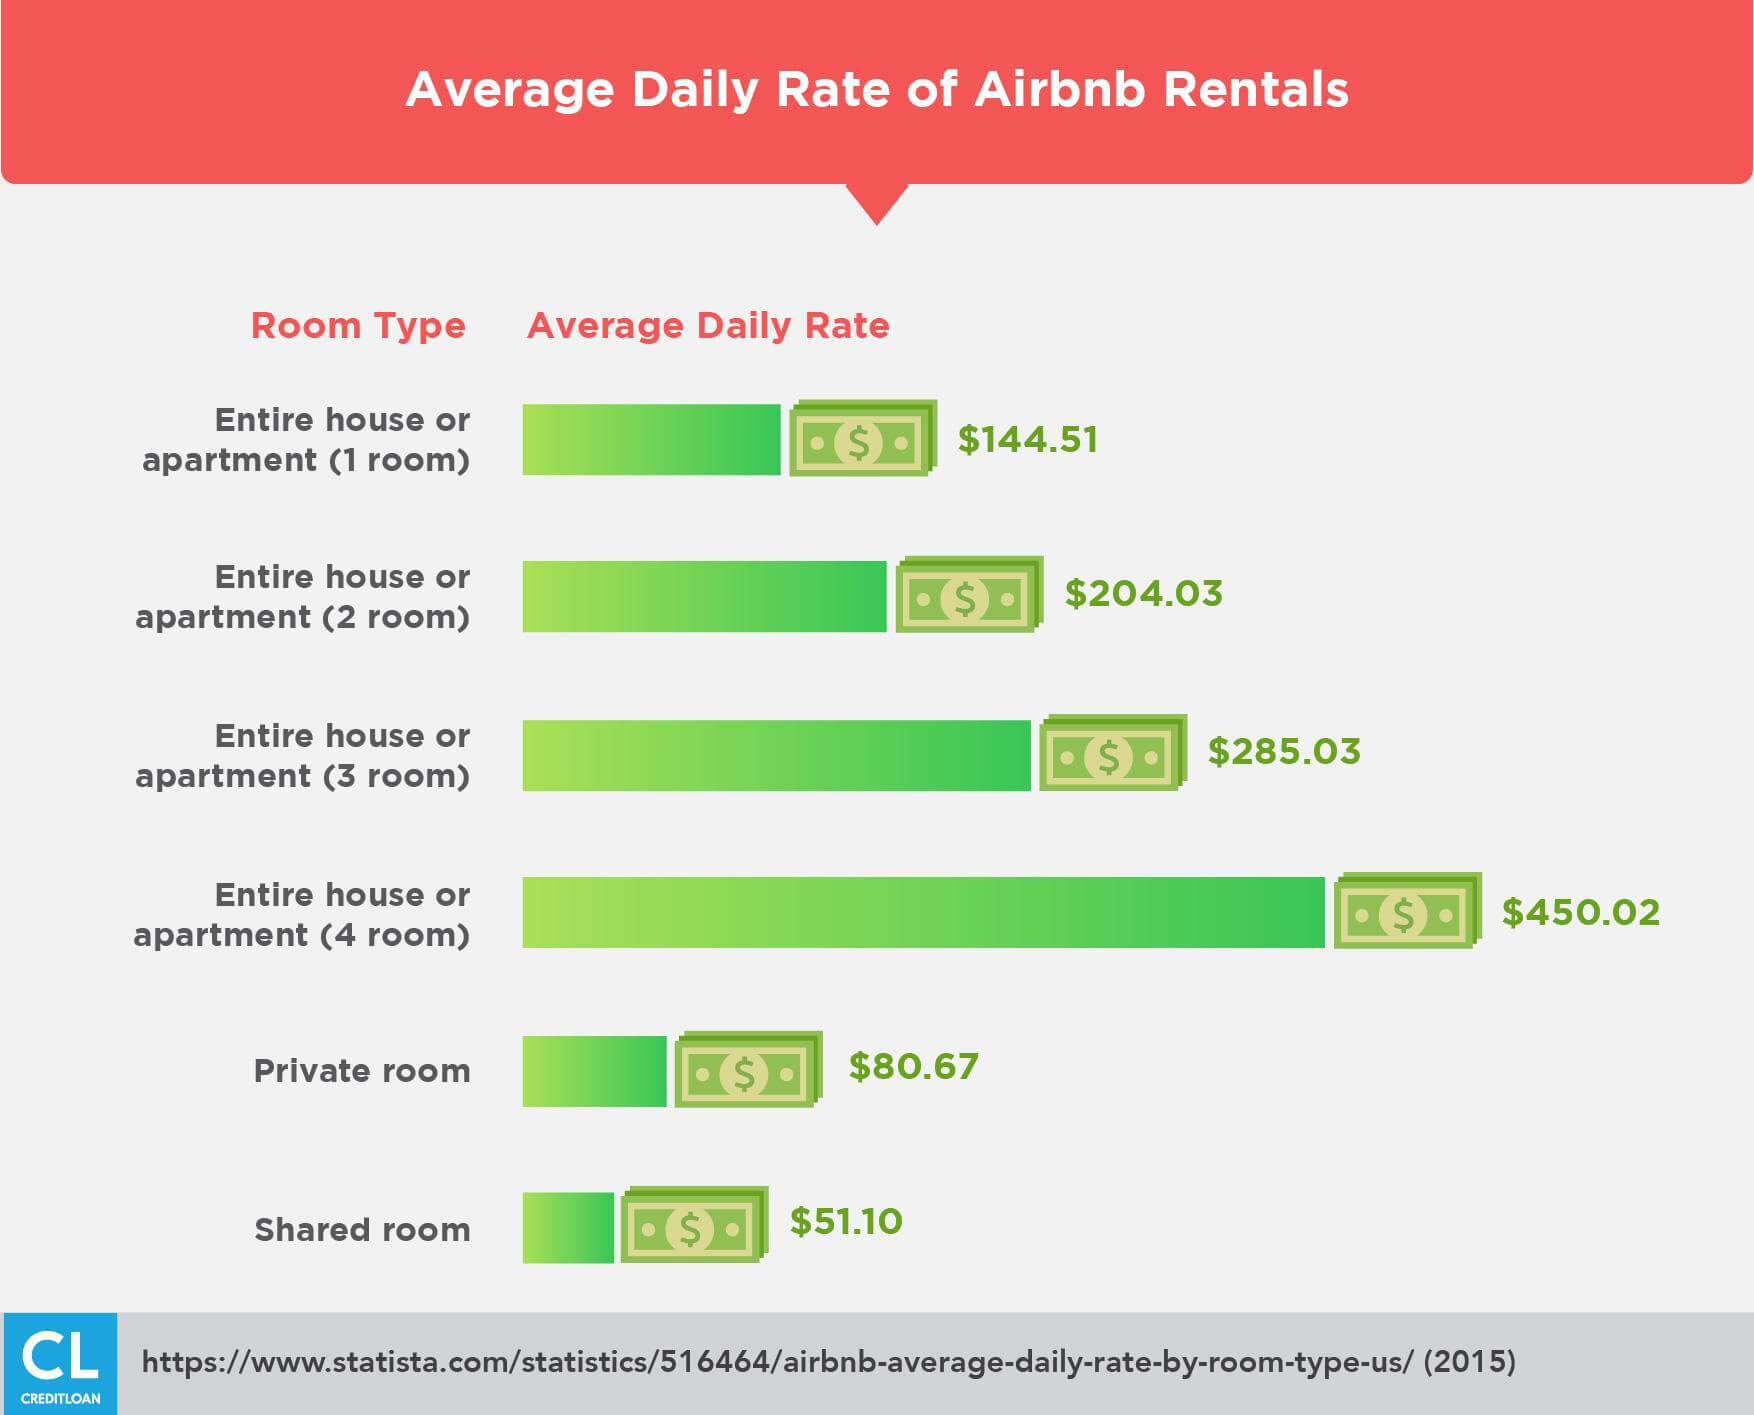 Average Daily Rate of Airbnb Rentals